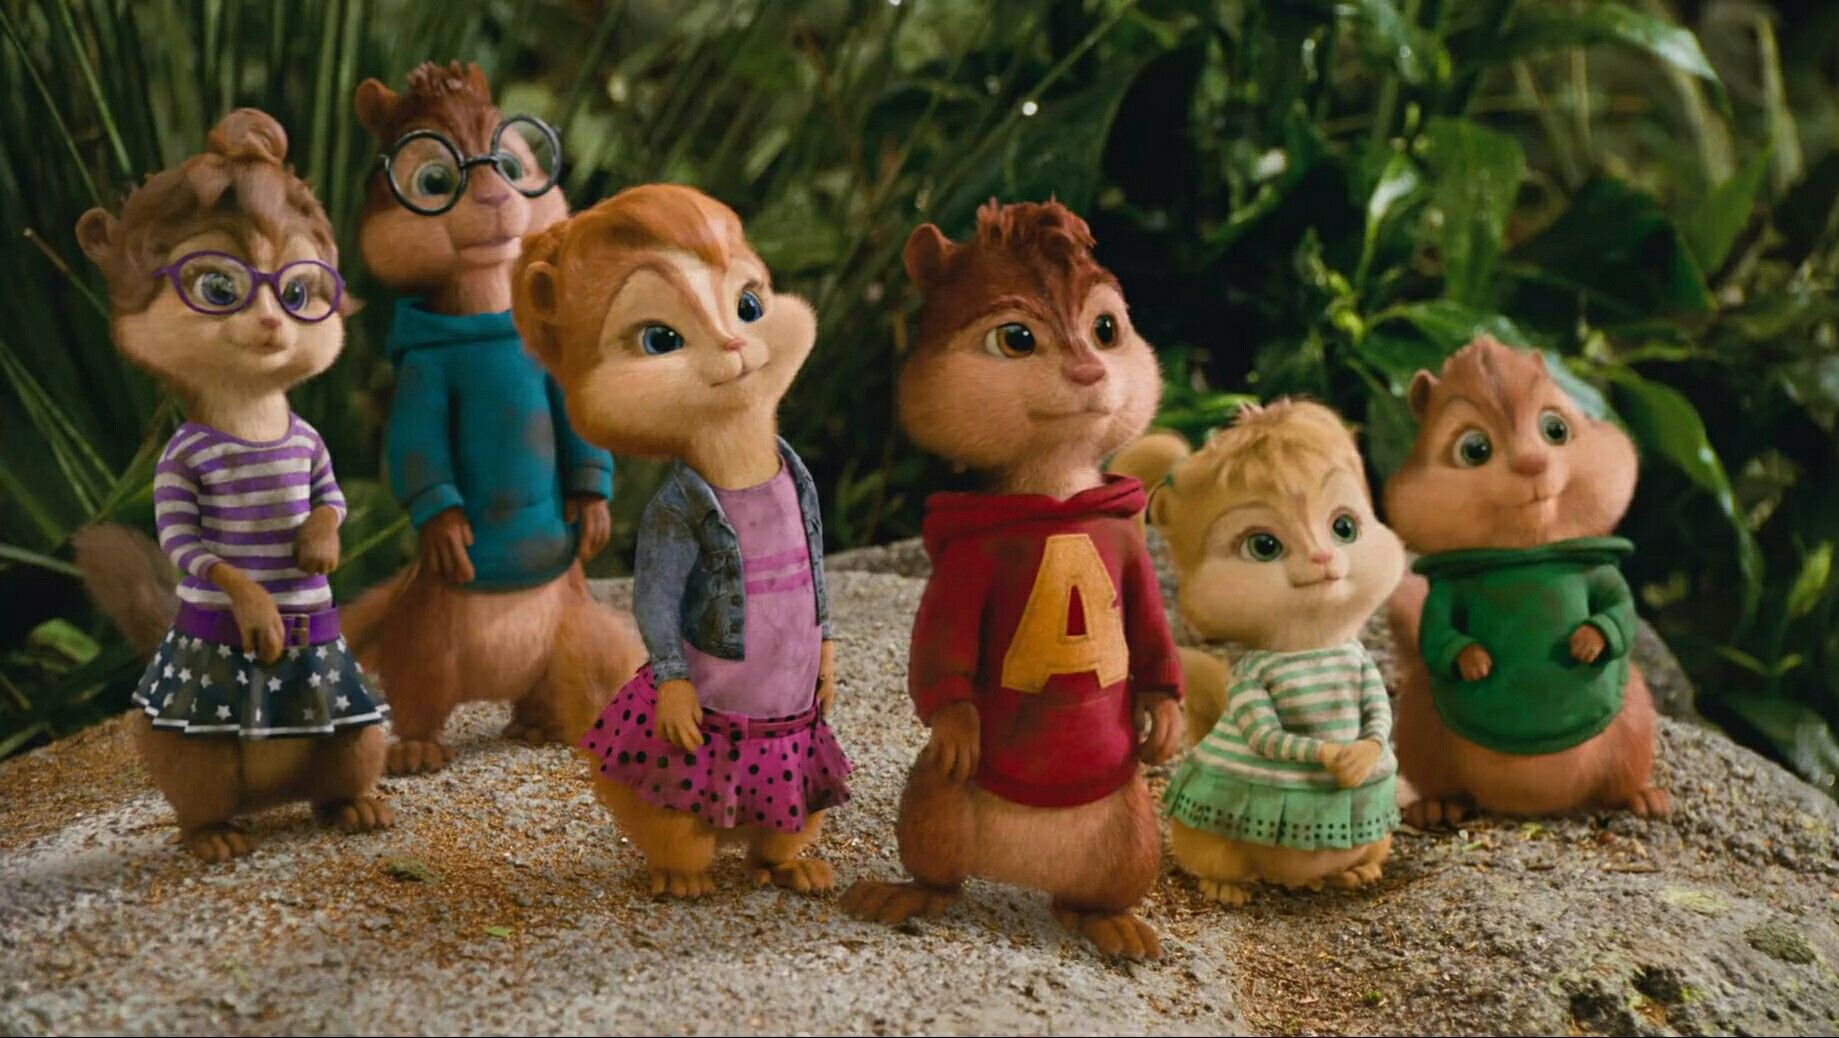 The Chipmunks And The Chipettes Alvin And The Chipmunks C